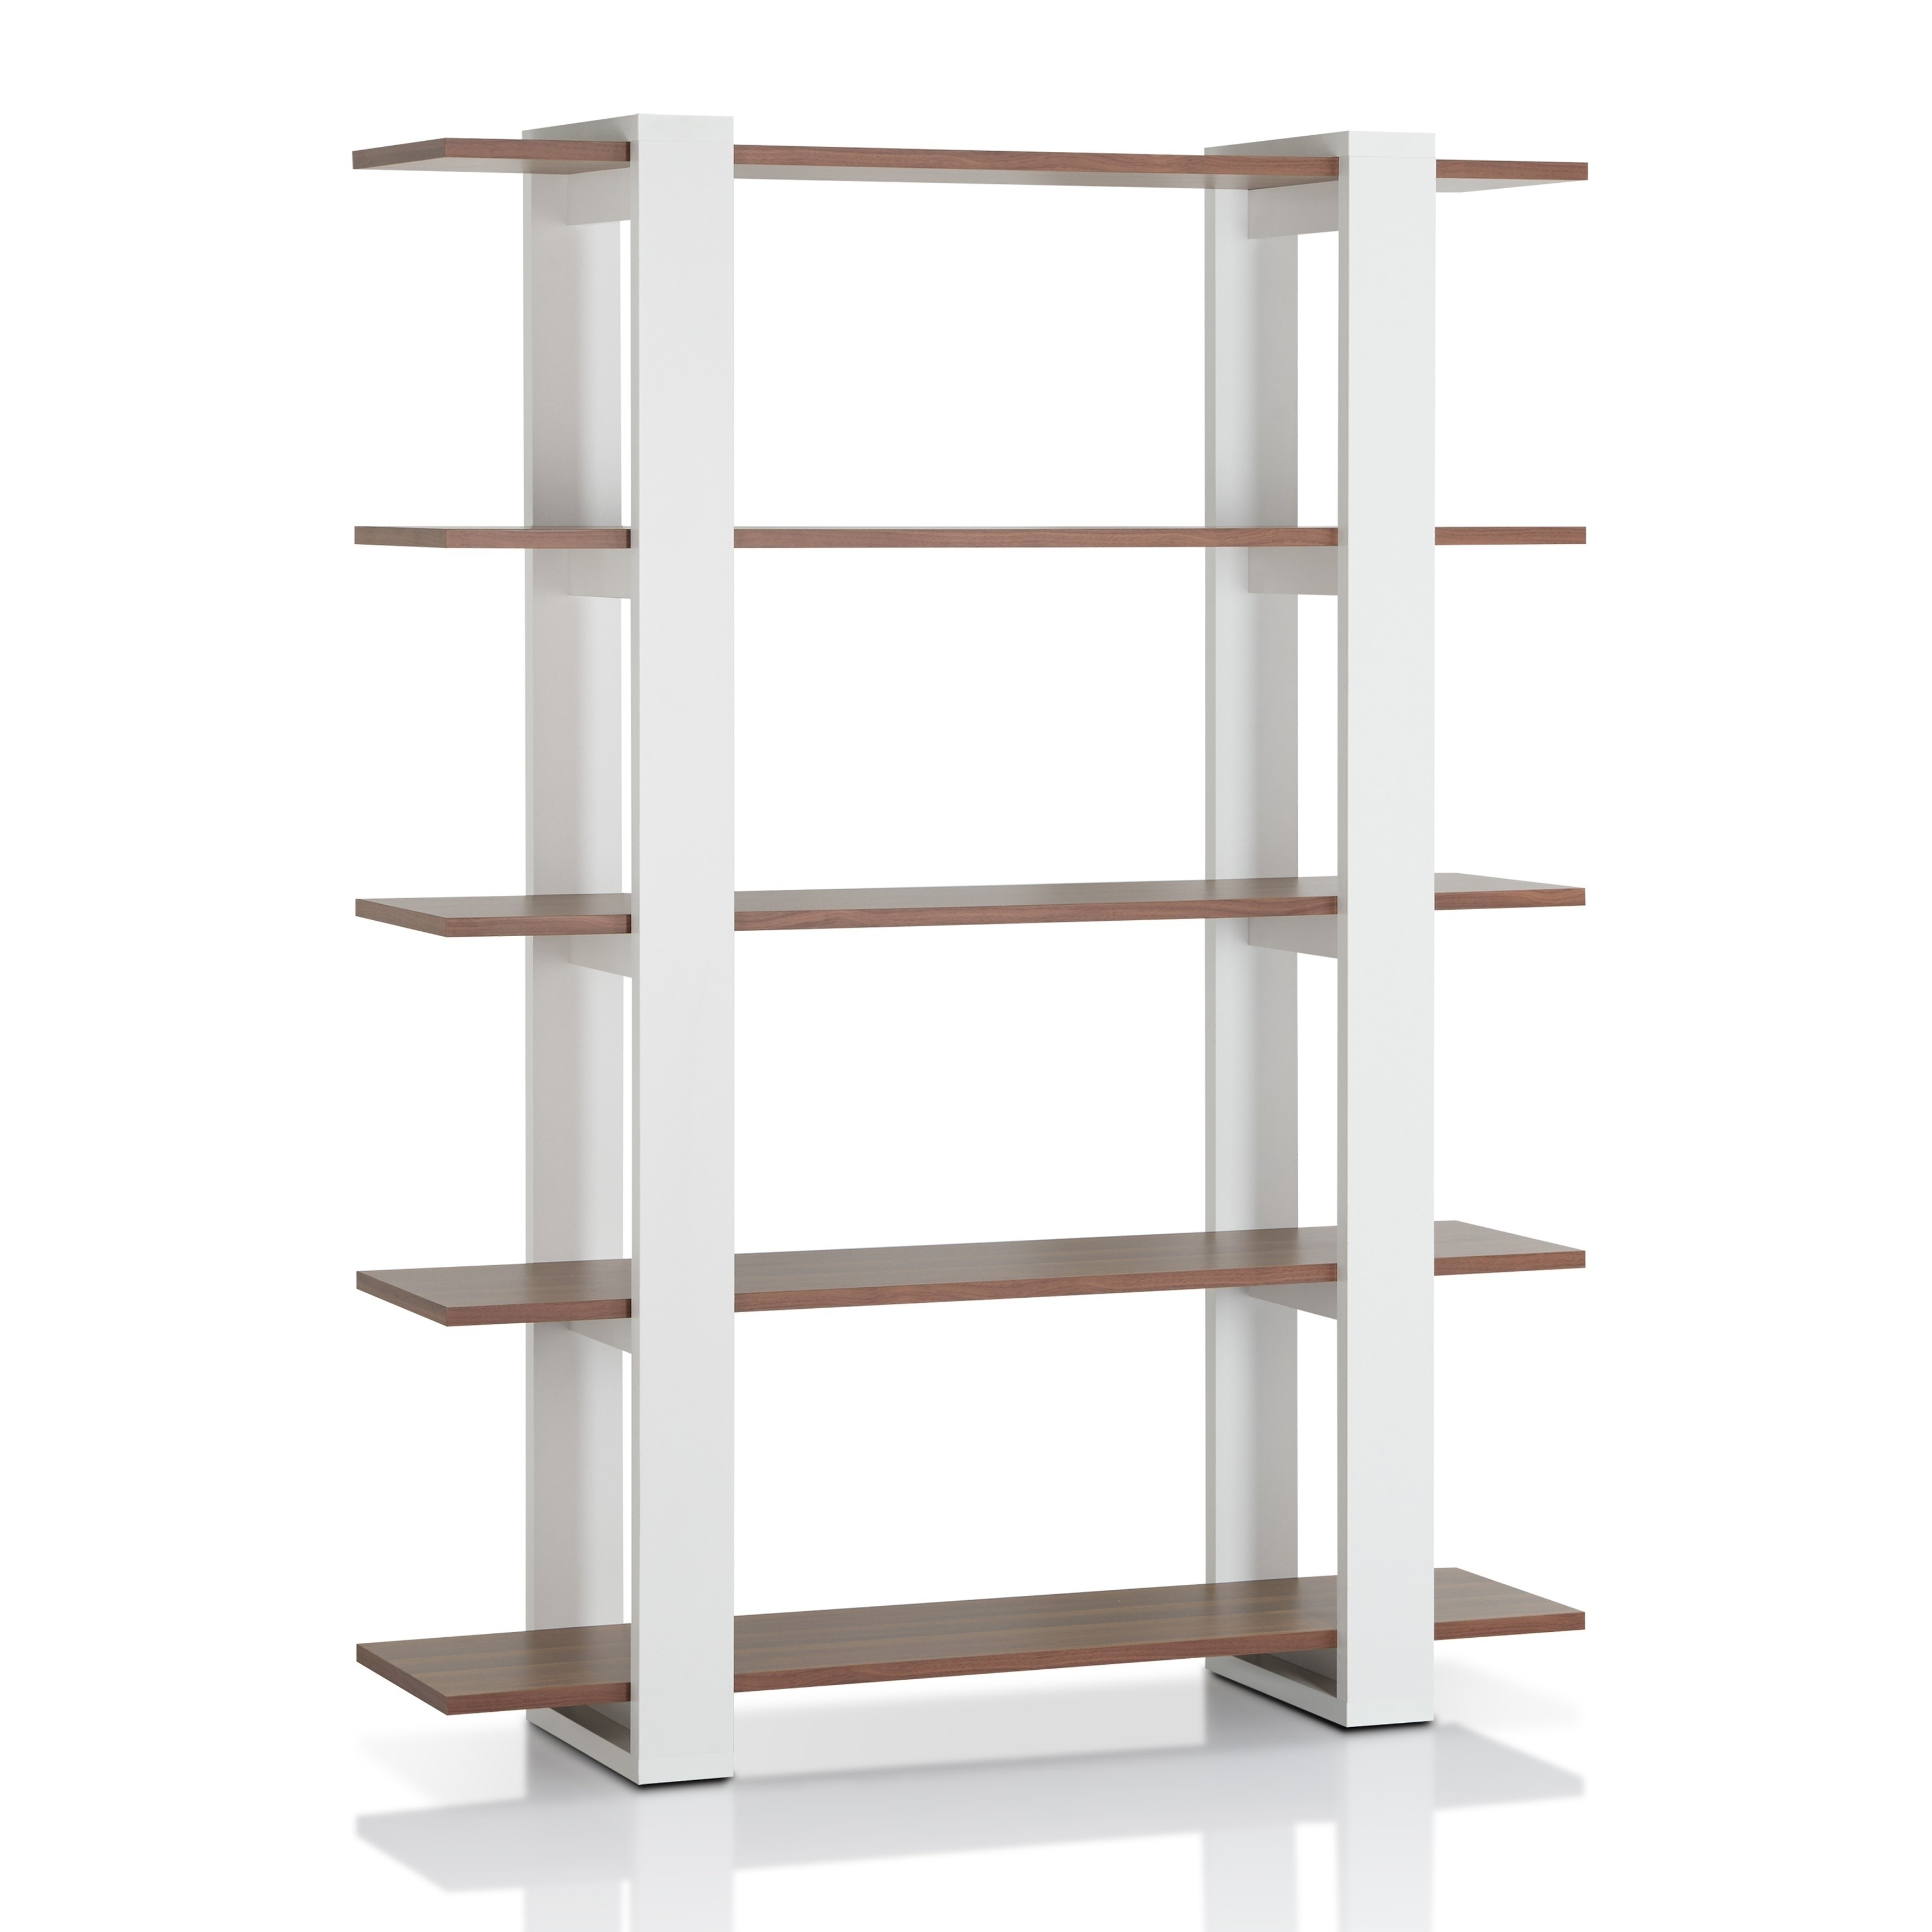 shelf book kitchen best of wood tall bookcase great pictures decors tool size image passive remodel shelves tag bookcases full ideas design guest open bookshelf free designing white tags pa corner cool bathroom marvelous houses magic mirrors